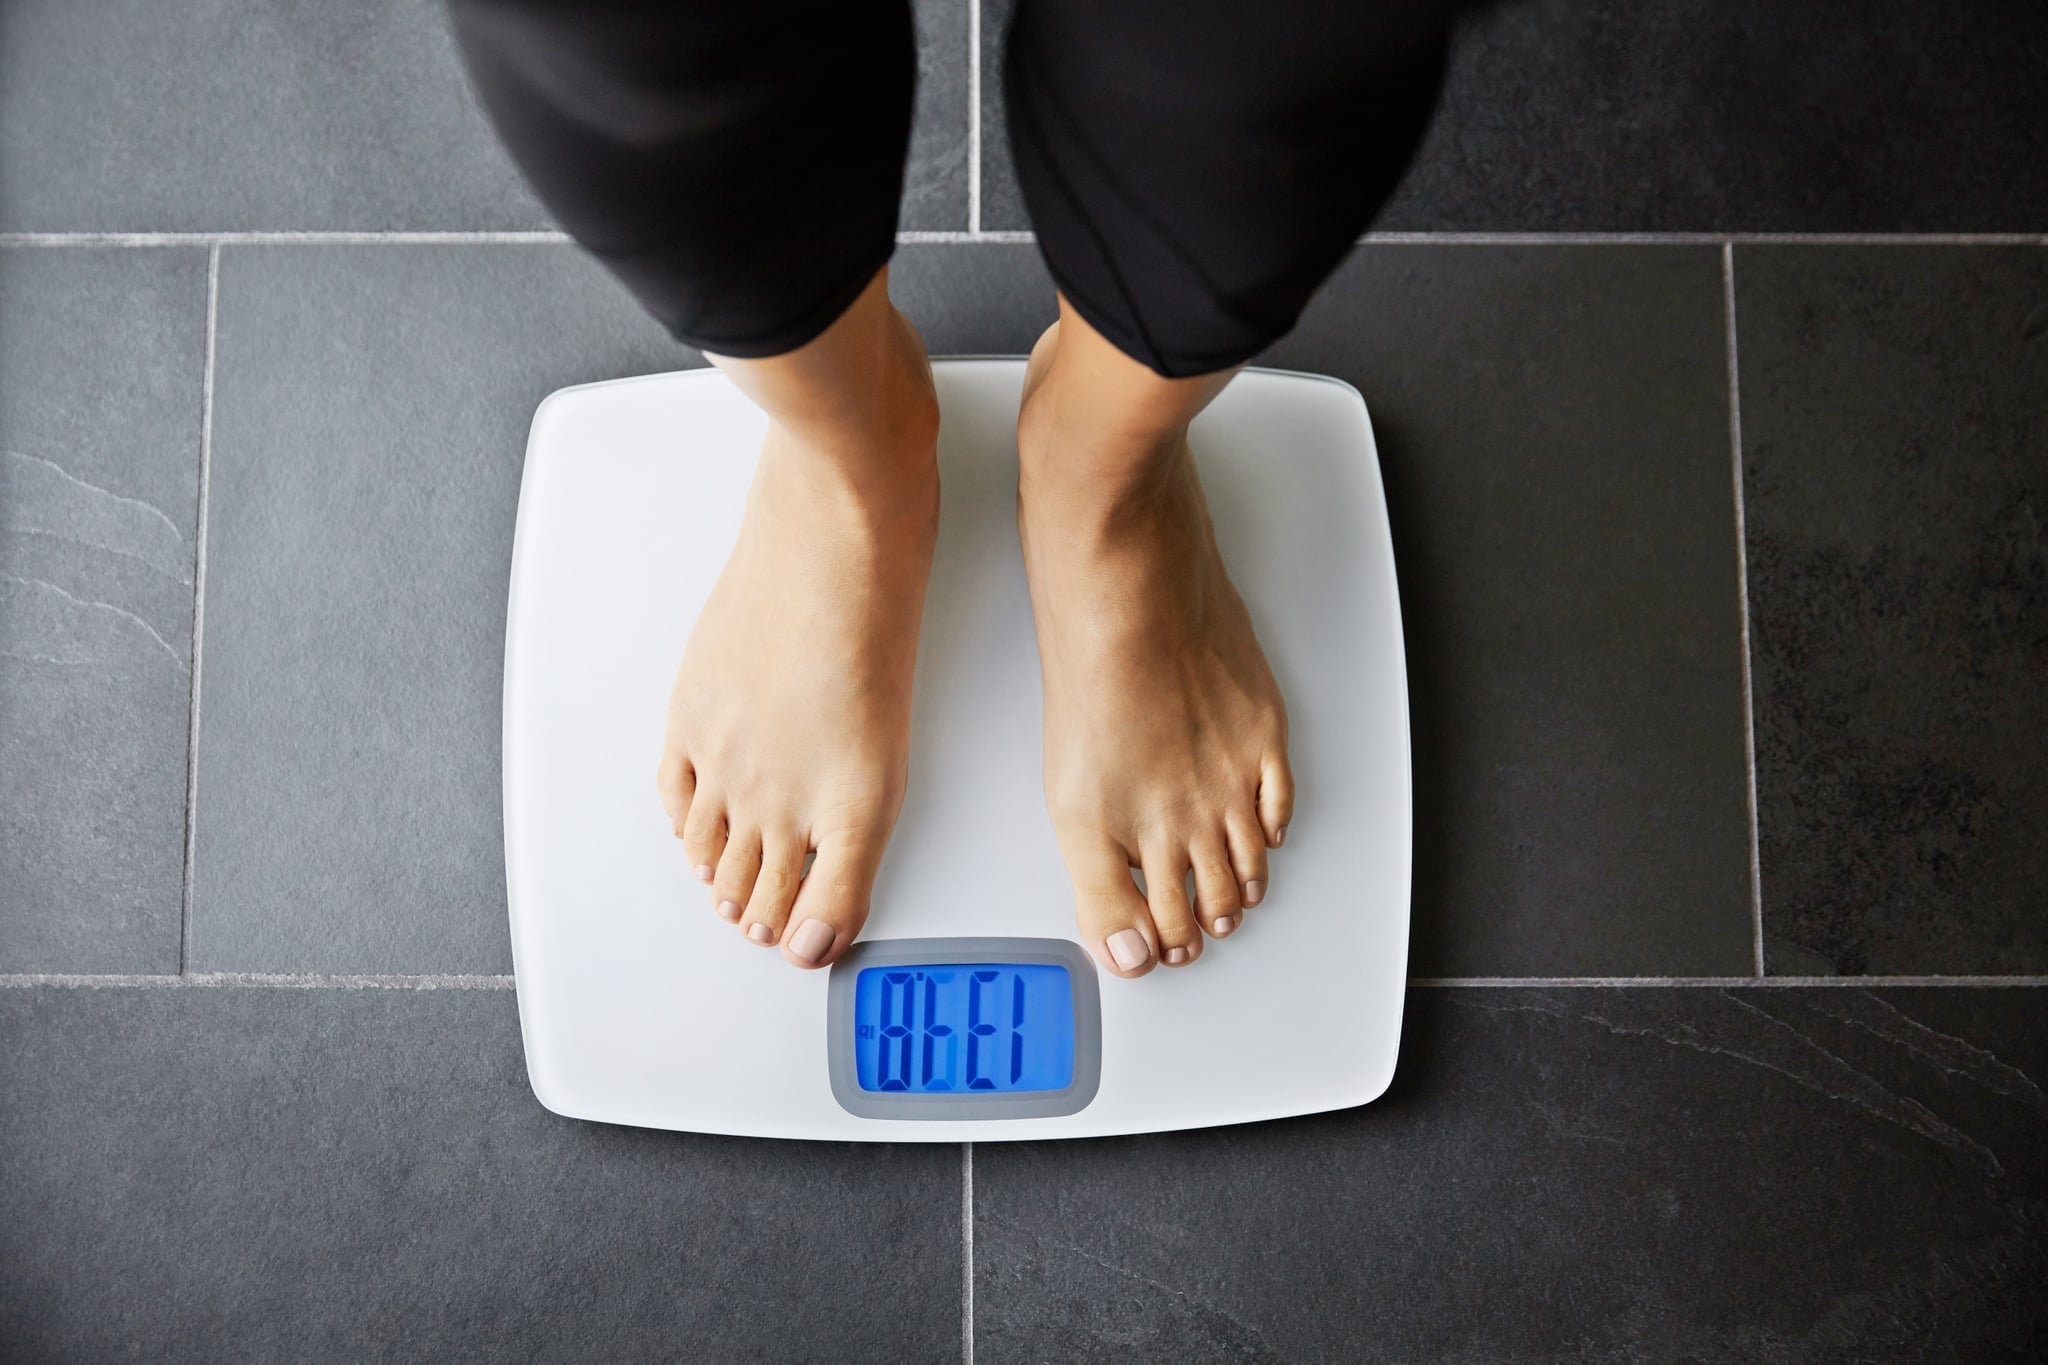 4. Additional aid to lose weight